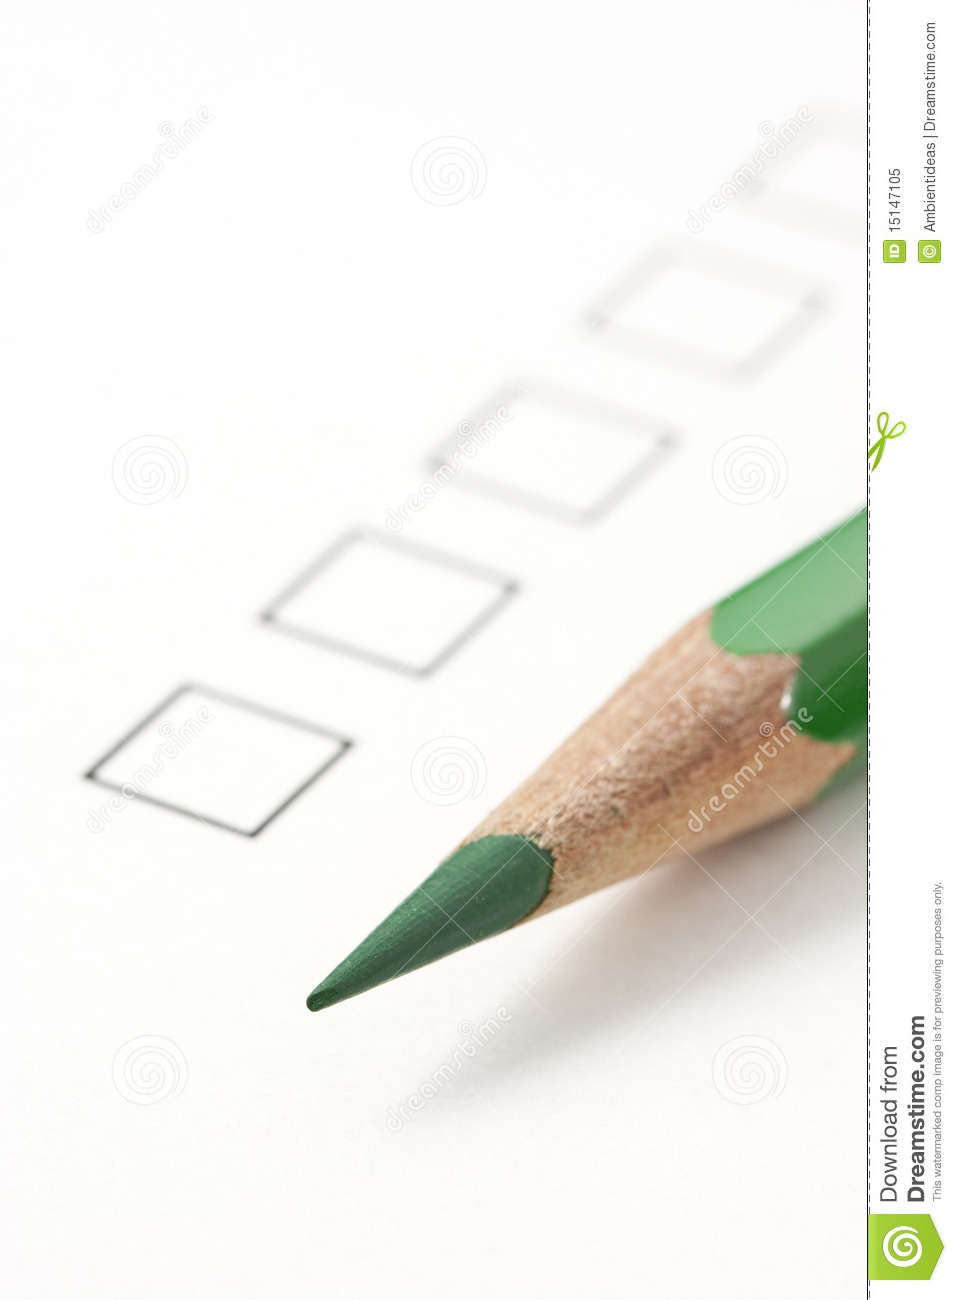 Blank Survey Check Box With Green Pencil Royalty Free Photo – Blank Survey